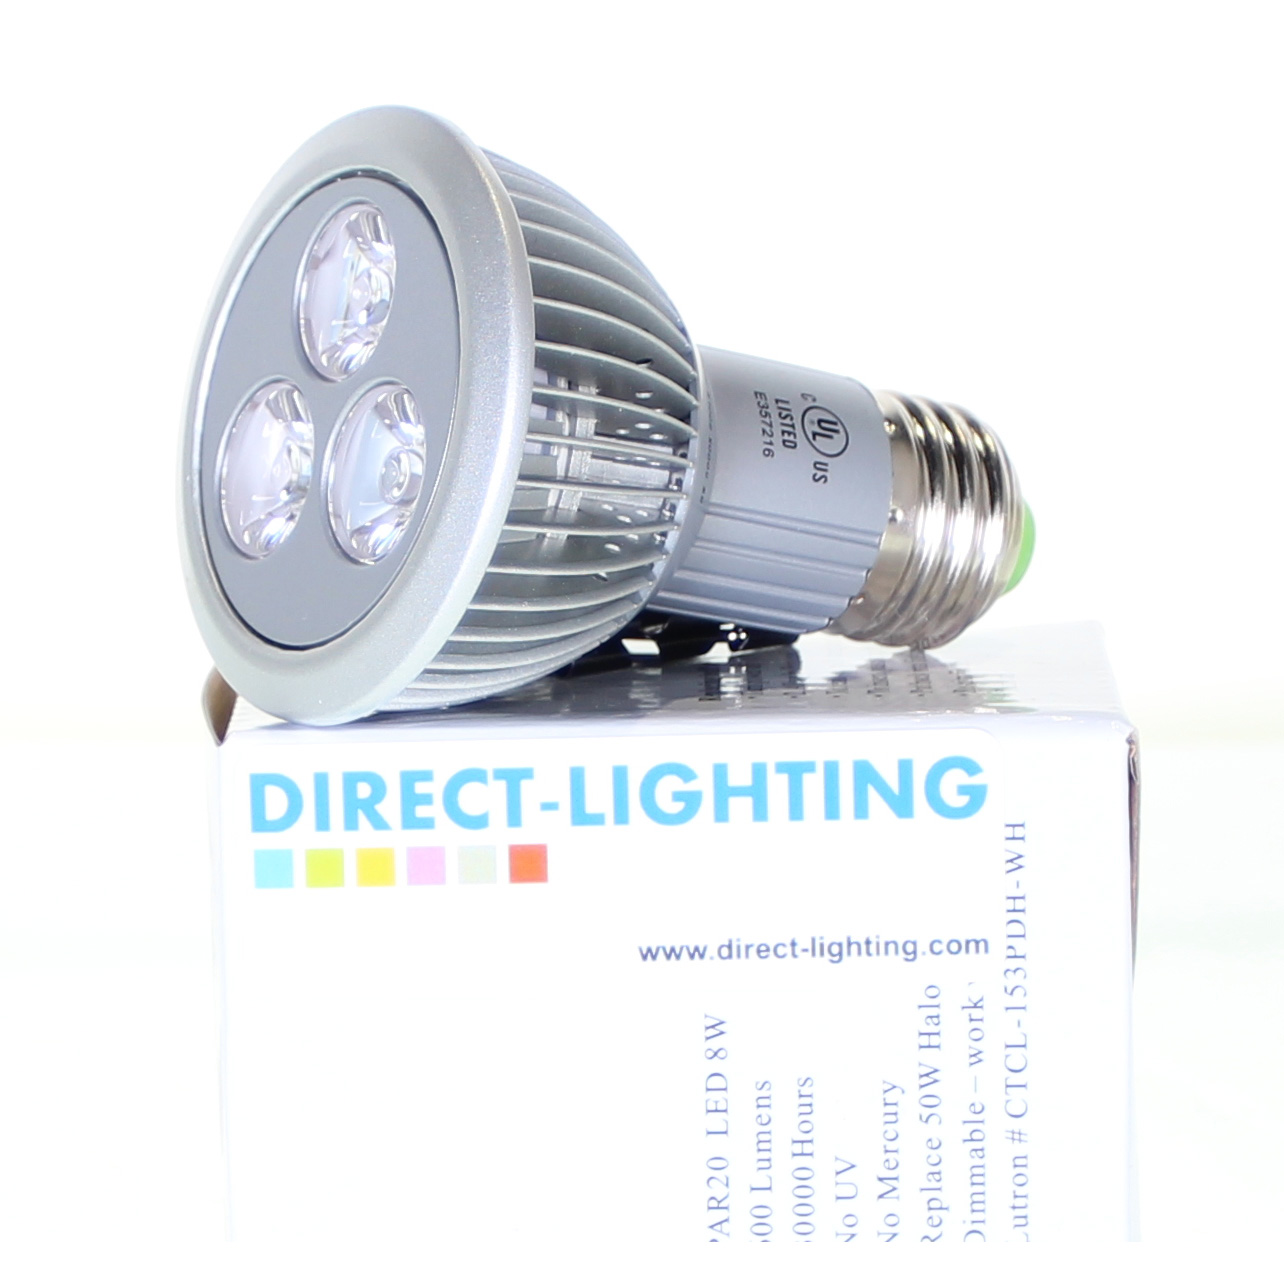 LED Light Bulb LB-7133-BS-3K  - LB-7133-BS-3K